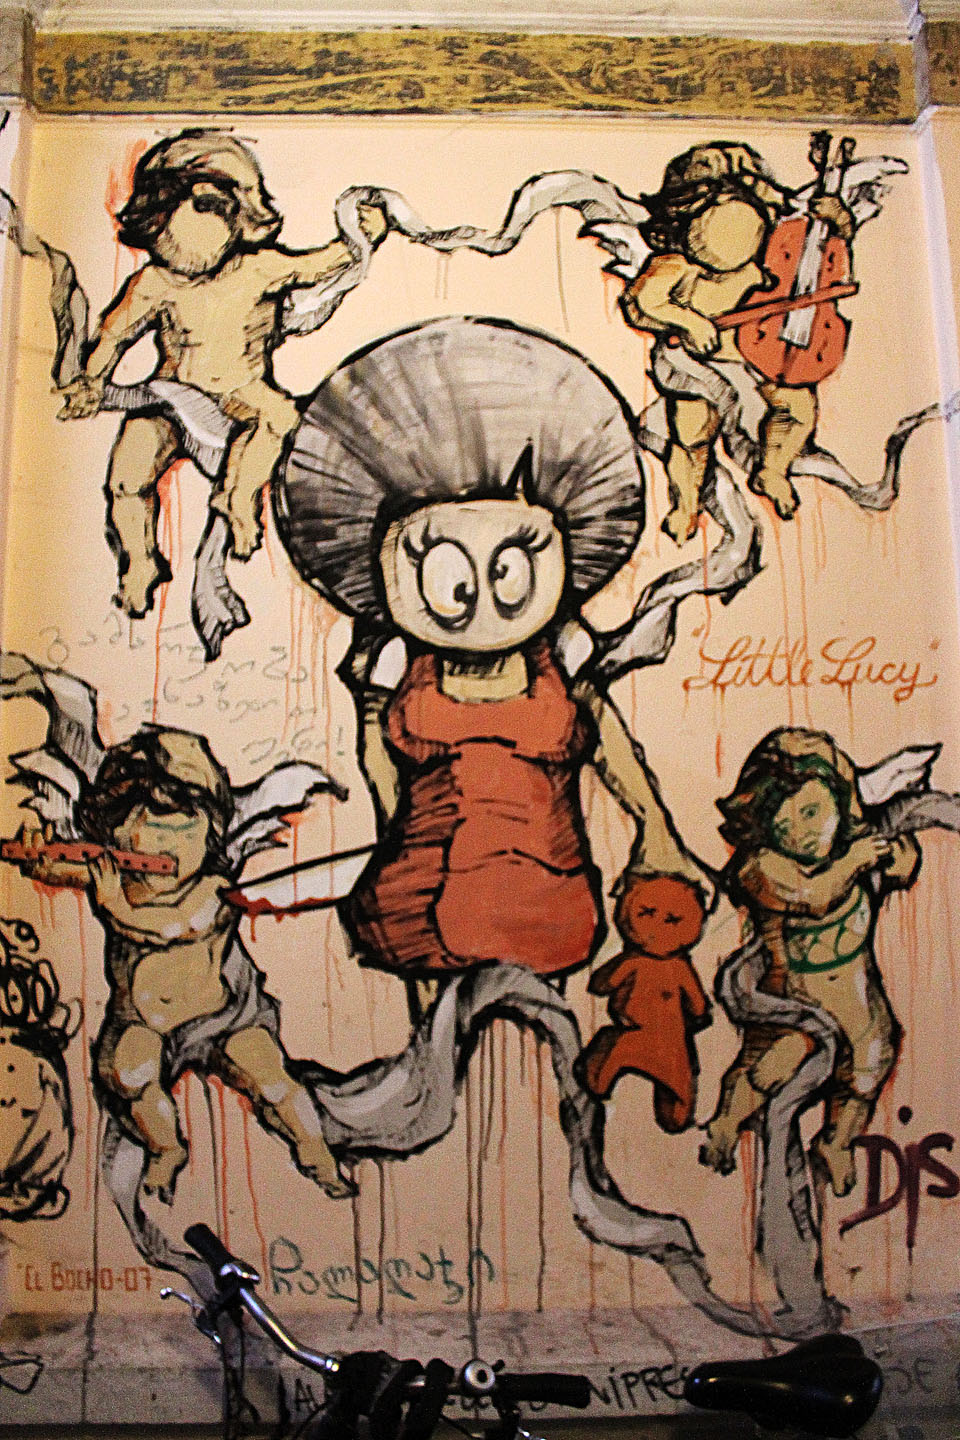 El Bocho - Little Lucy Painting